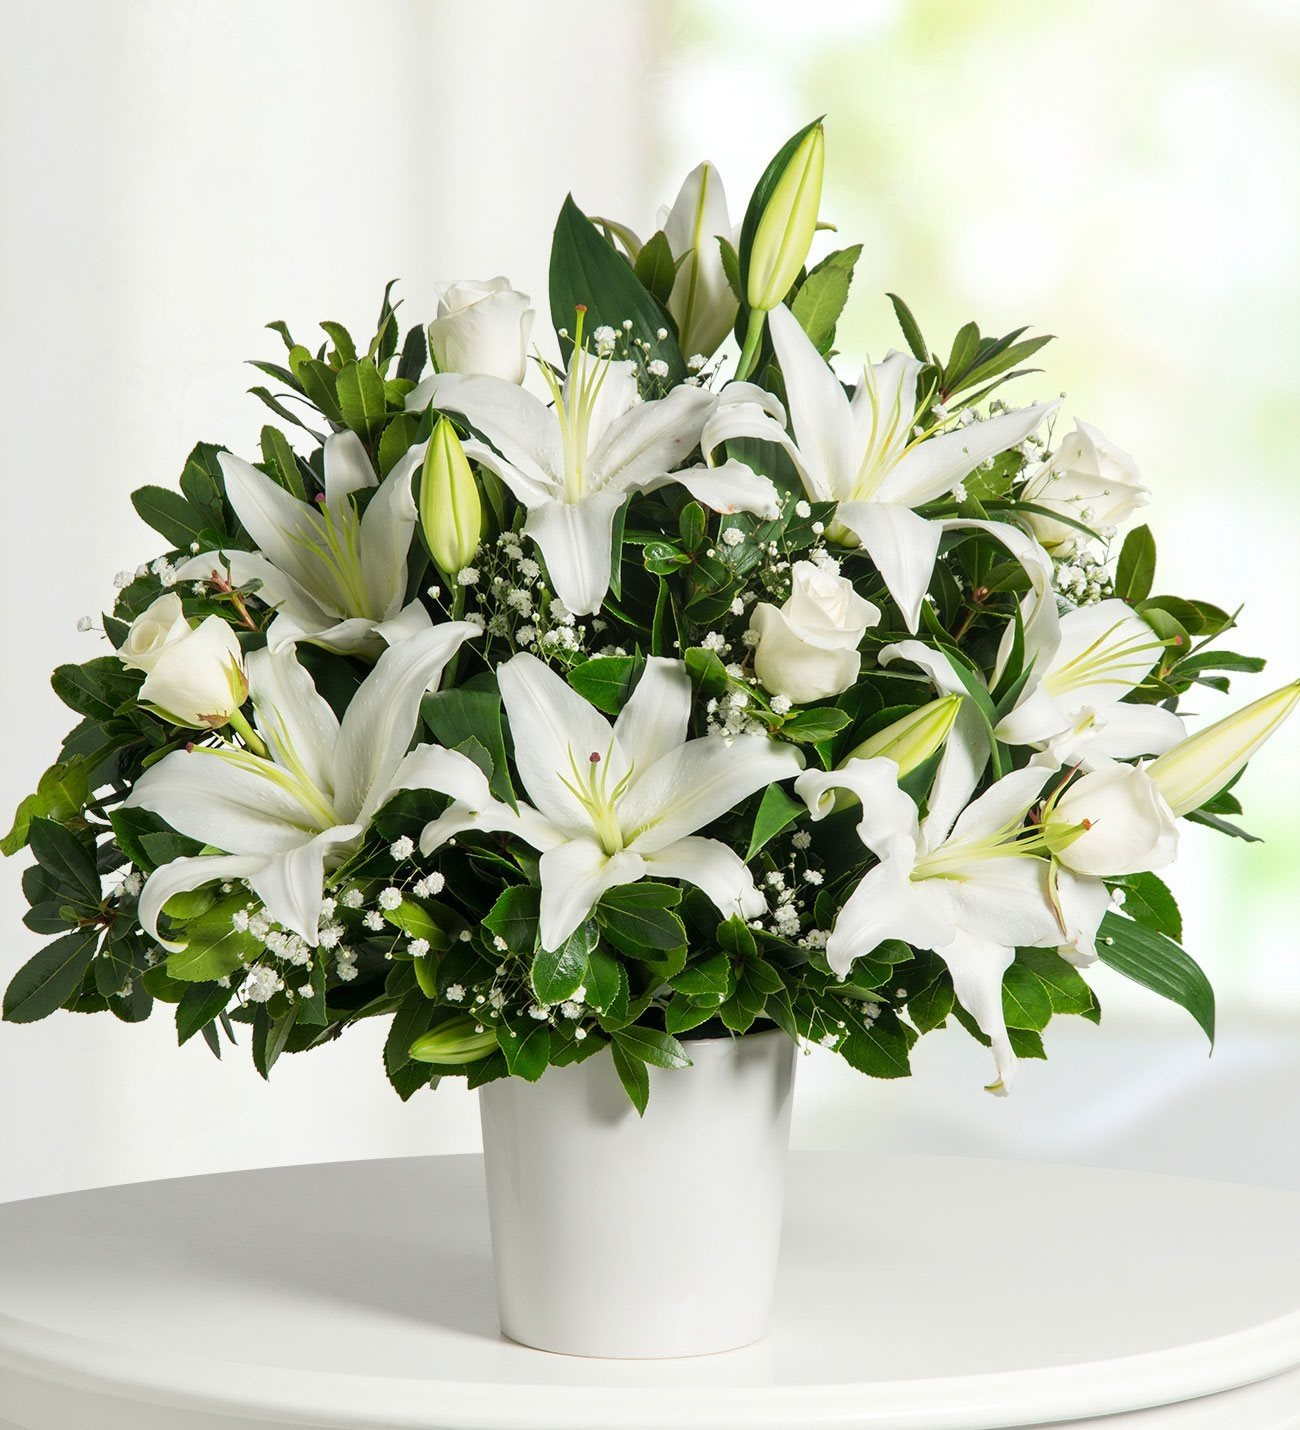 Lolaflora international flower delivery service lilies and roses peaceful hug izmirmasajfo